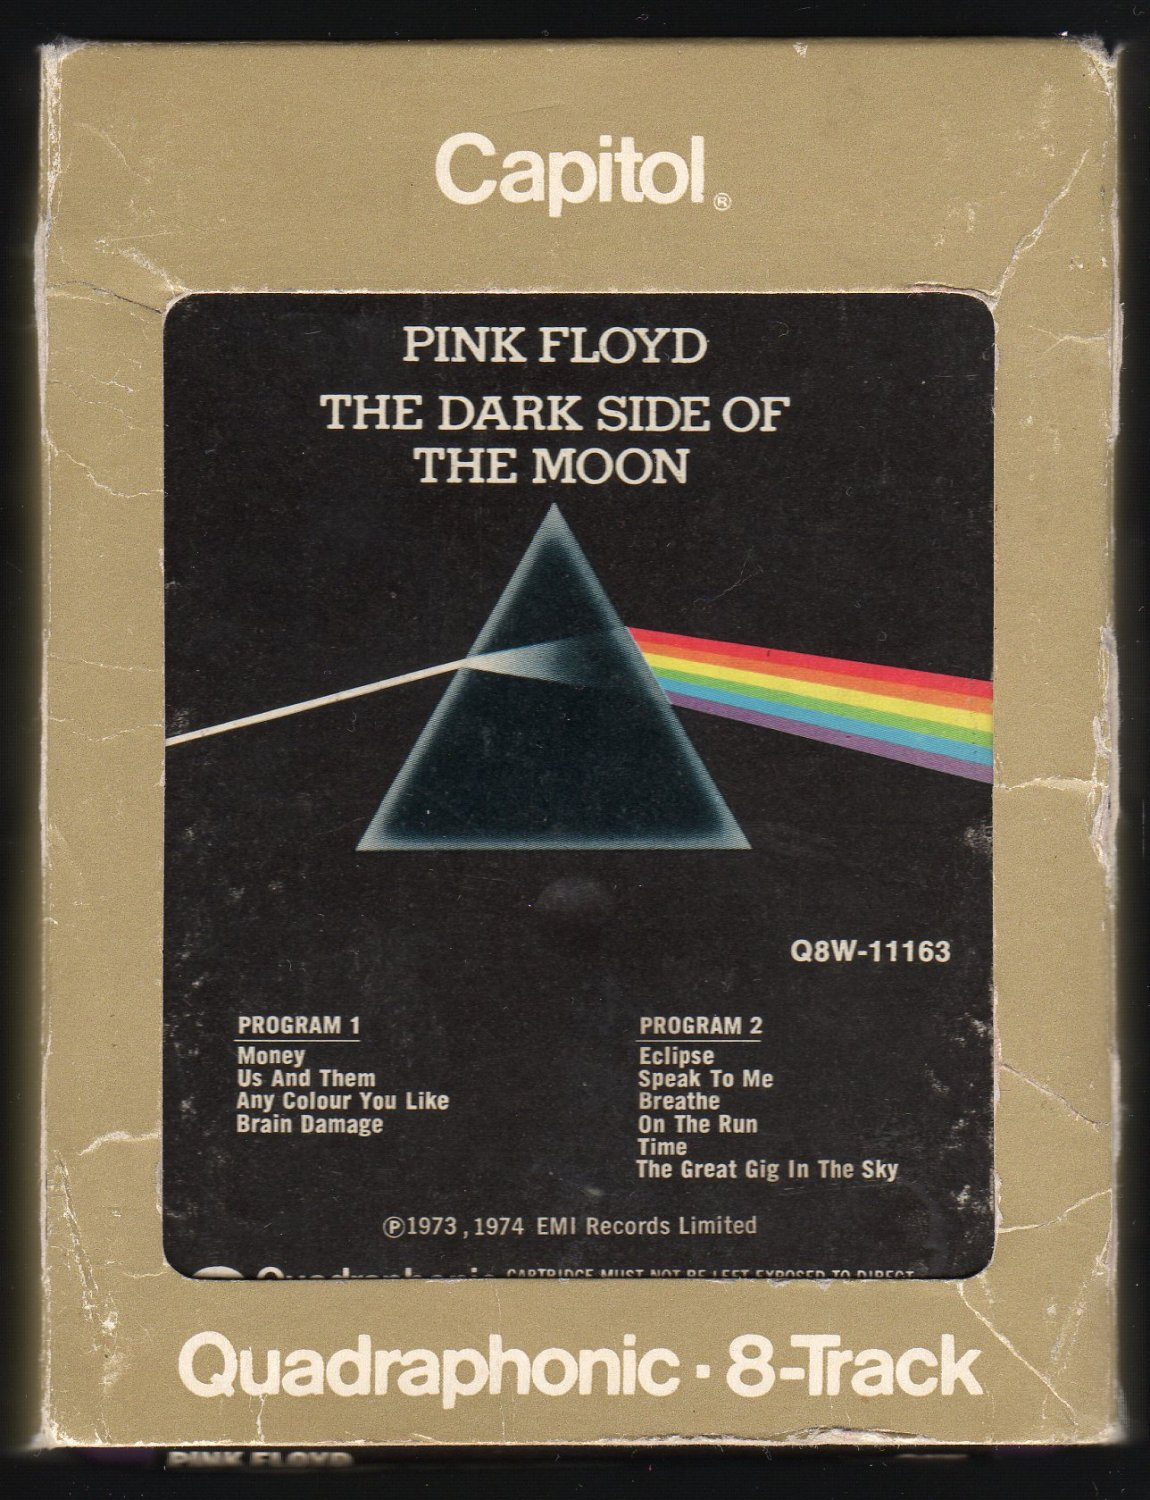 Pink Floyd - The Dark Side Of The Moon 1973 CAPITOL Quadraphonic A19B 8-TRACK TAPE